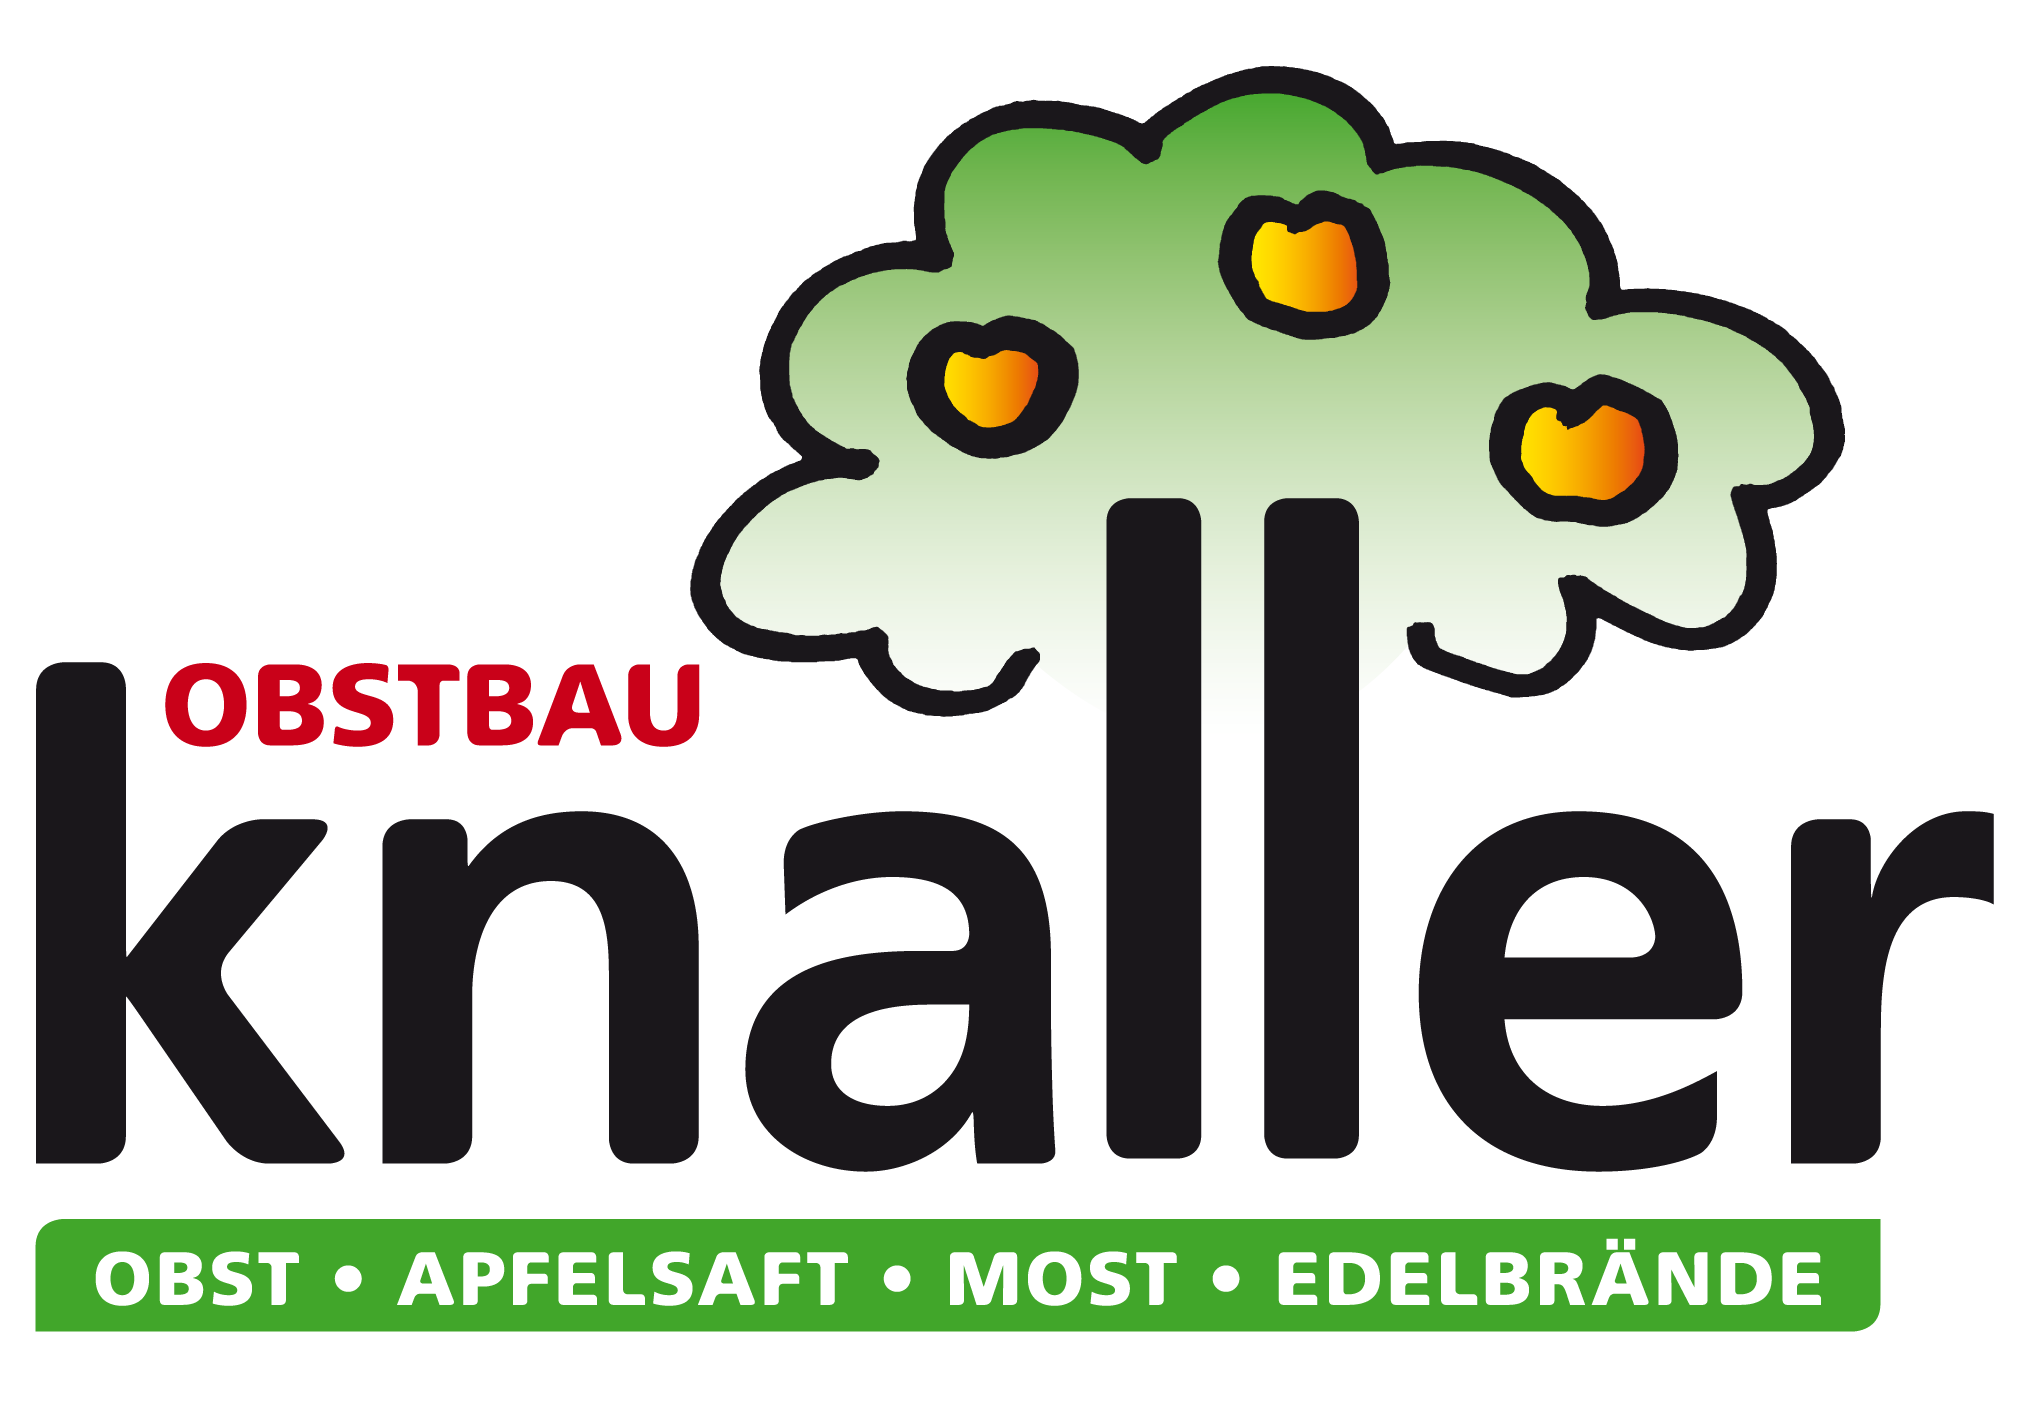 Obstbau Knaller